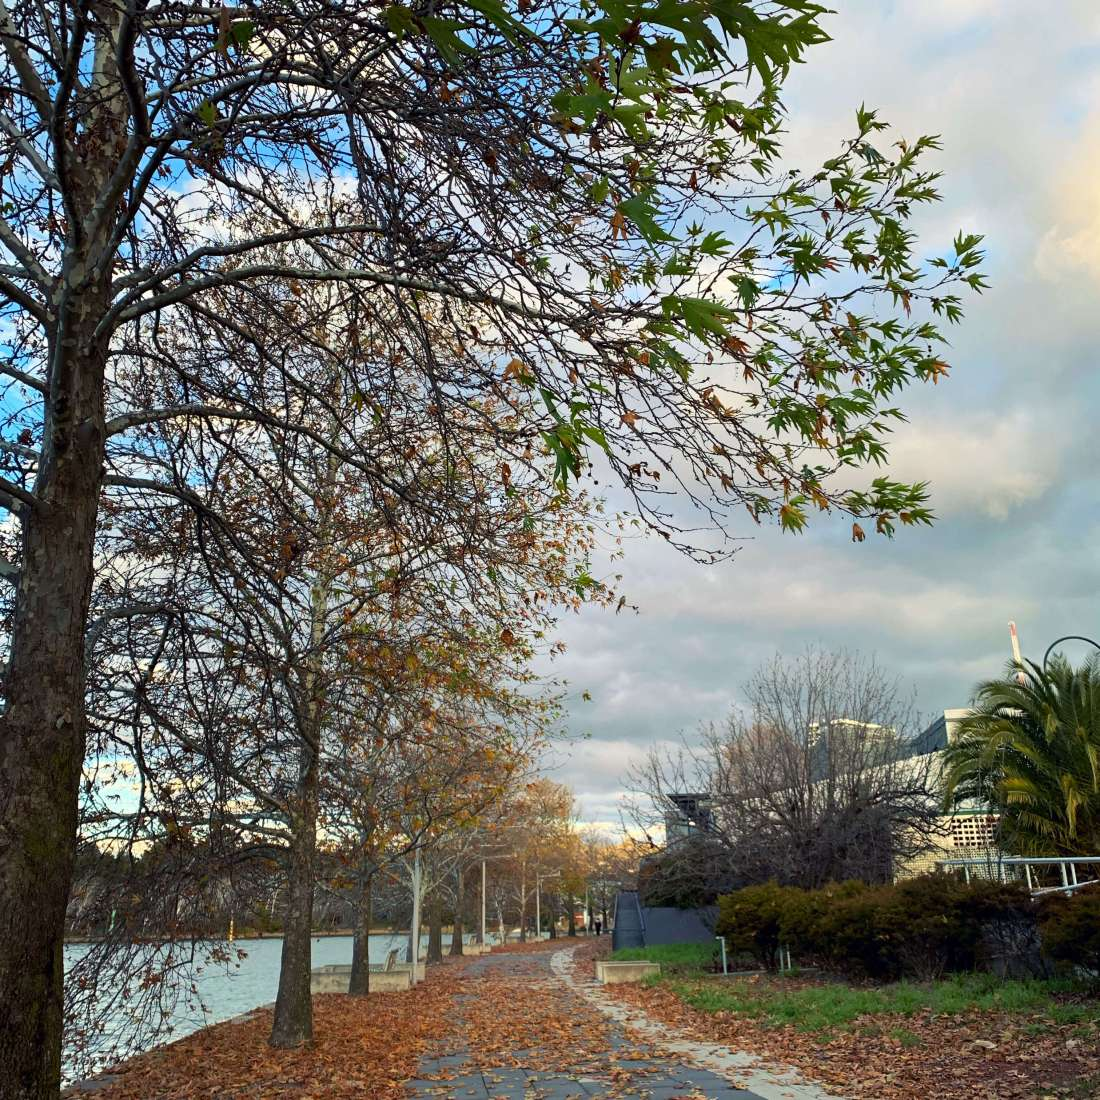 By Lake Ginninderra, Canberra